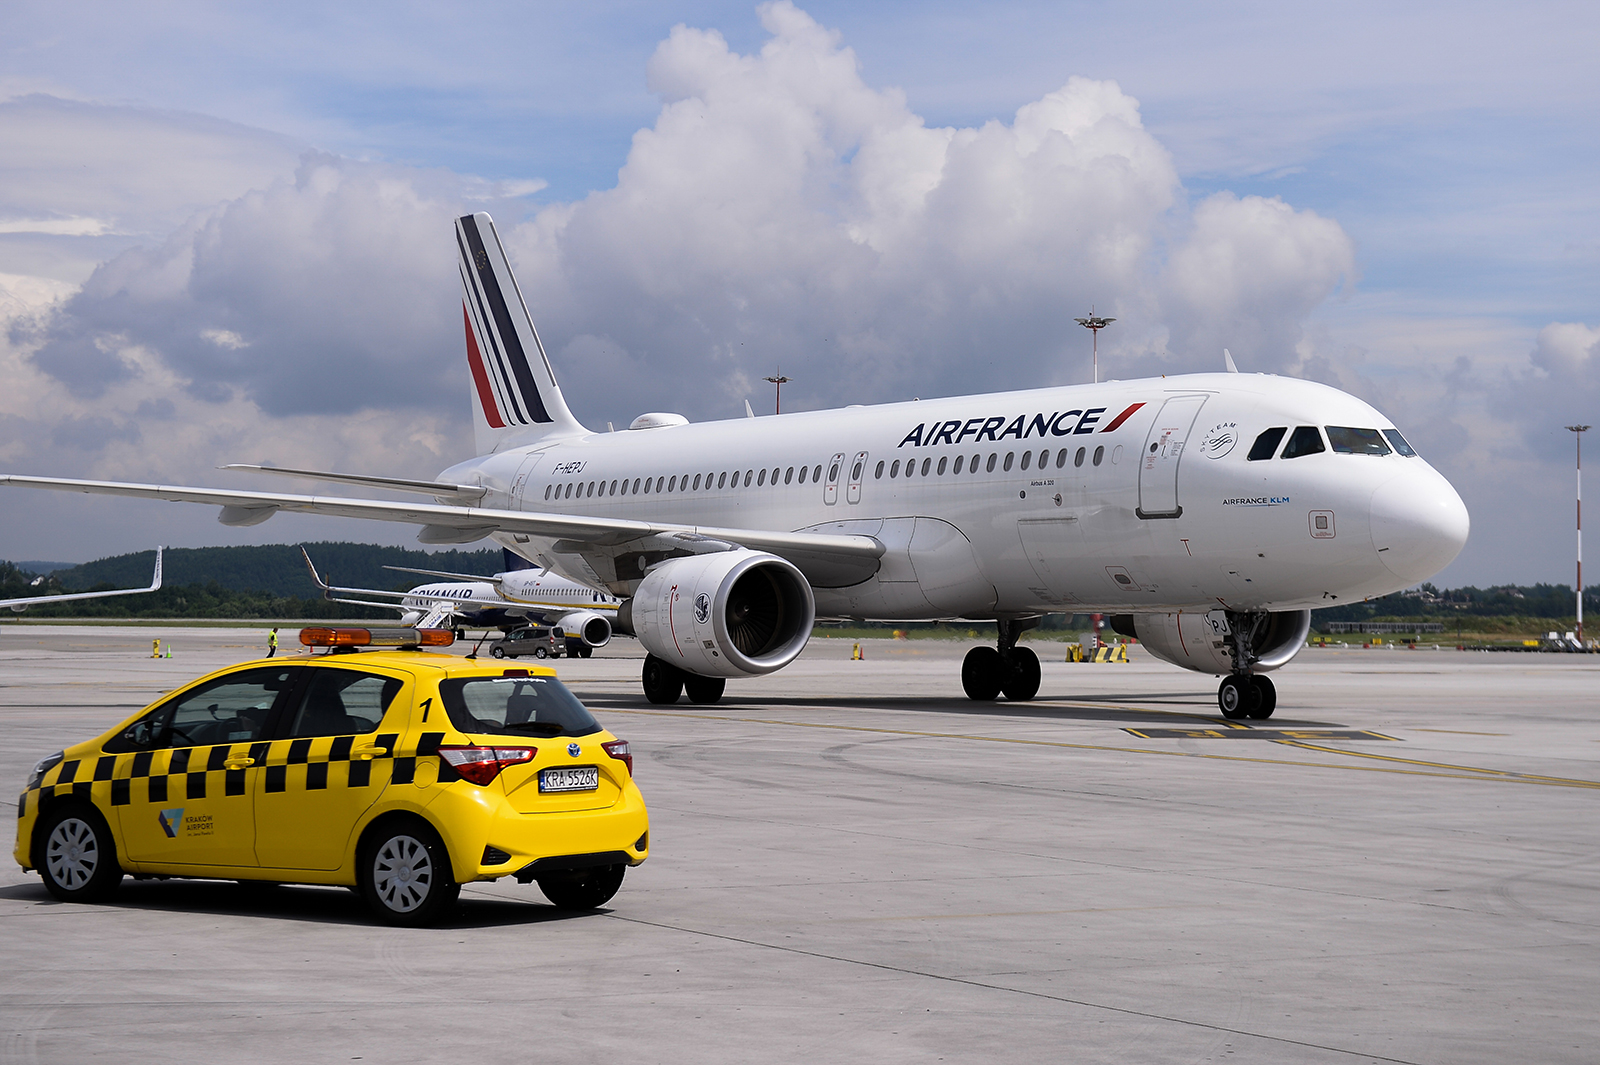 An Air France KLM Airbus A320 taxis at the John Paul II Krakow International Airport in Krakow, Poland on July 3.